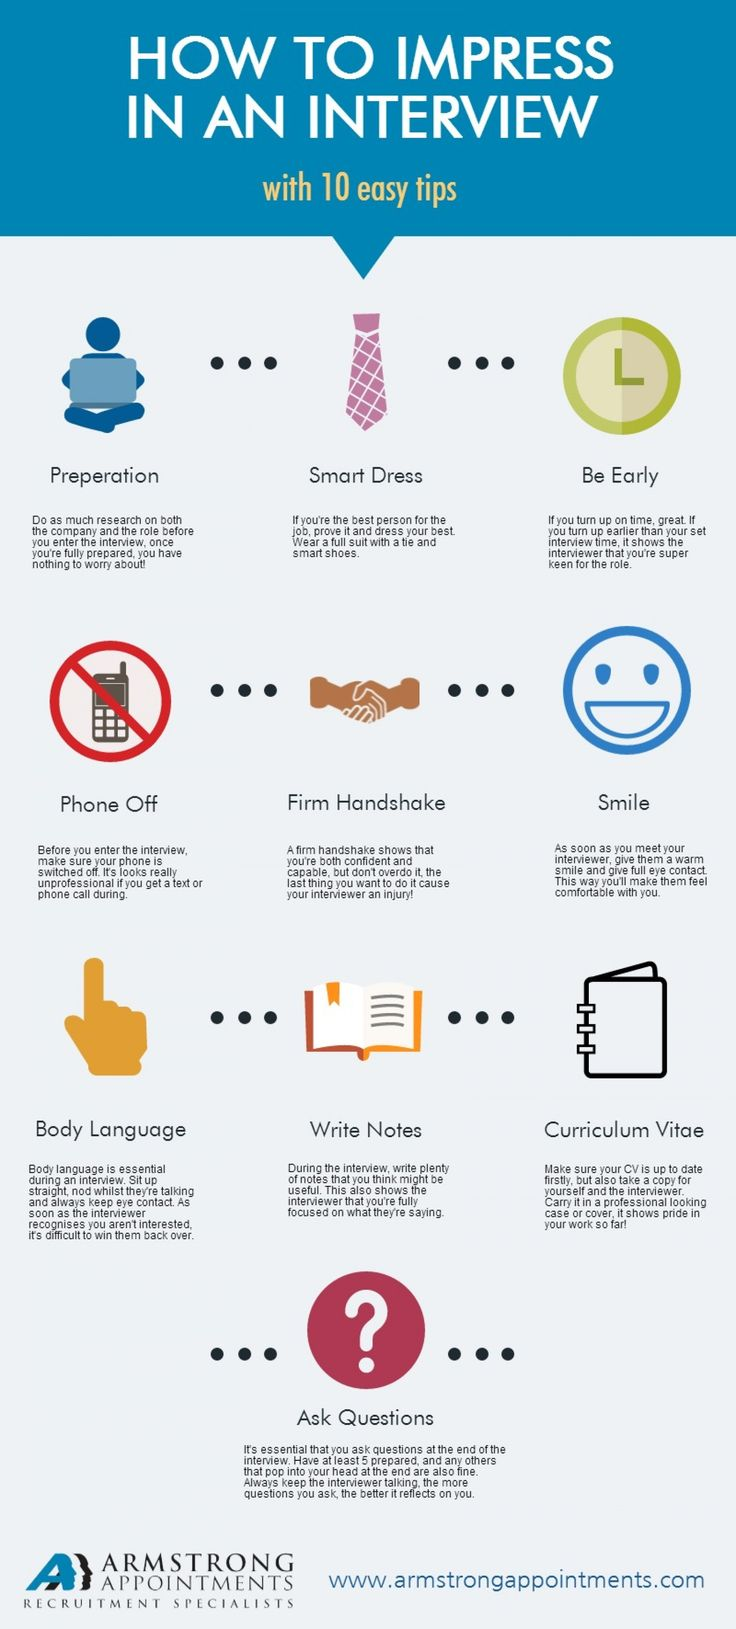 How to impress in an #interview with 10 easy tips #infographic